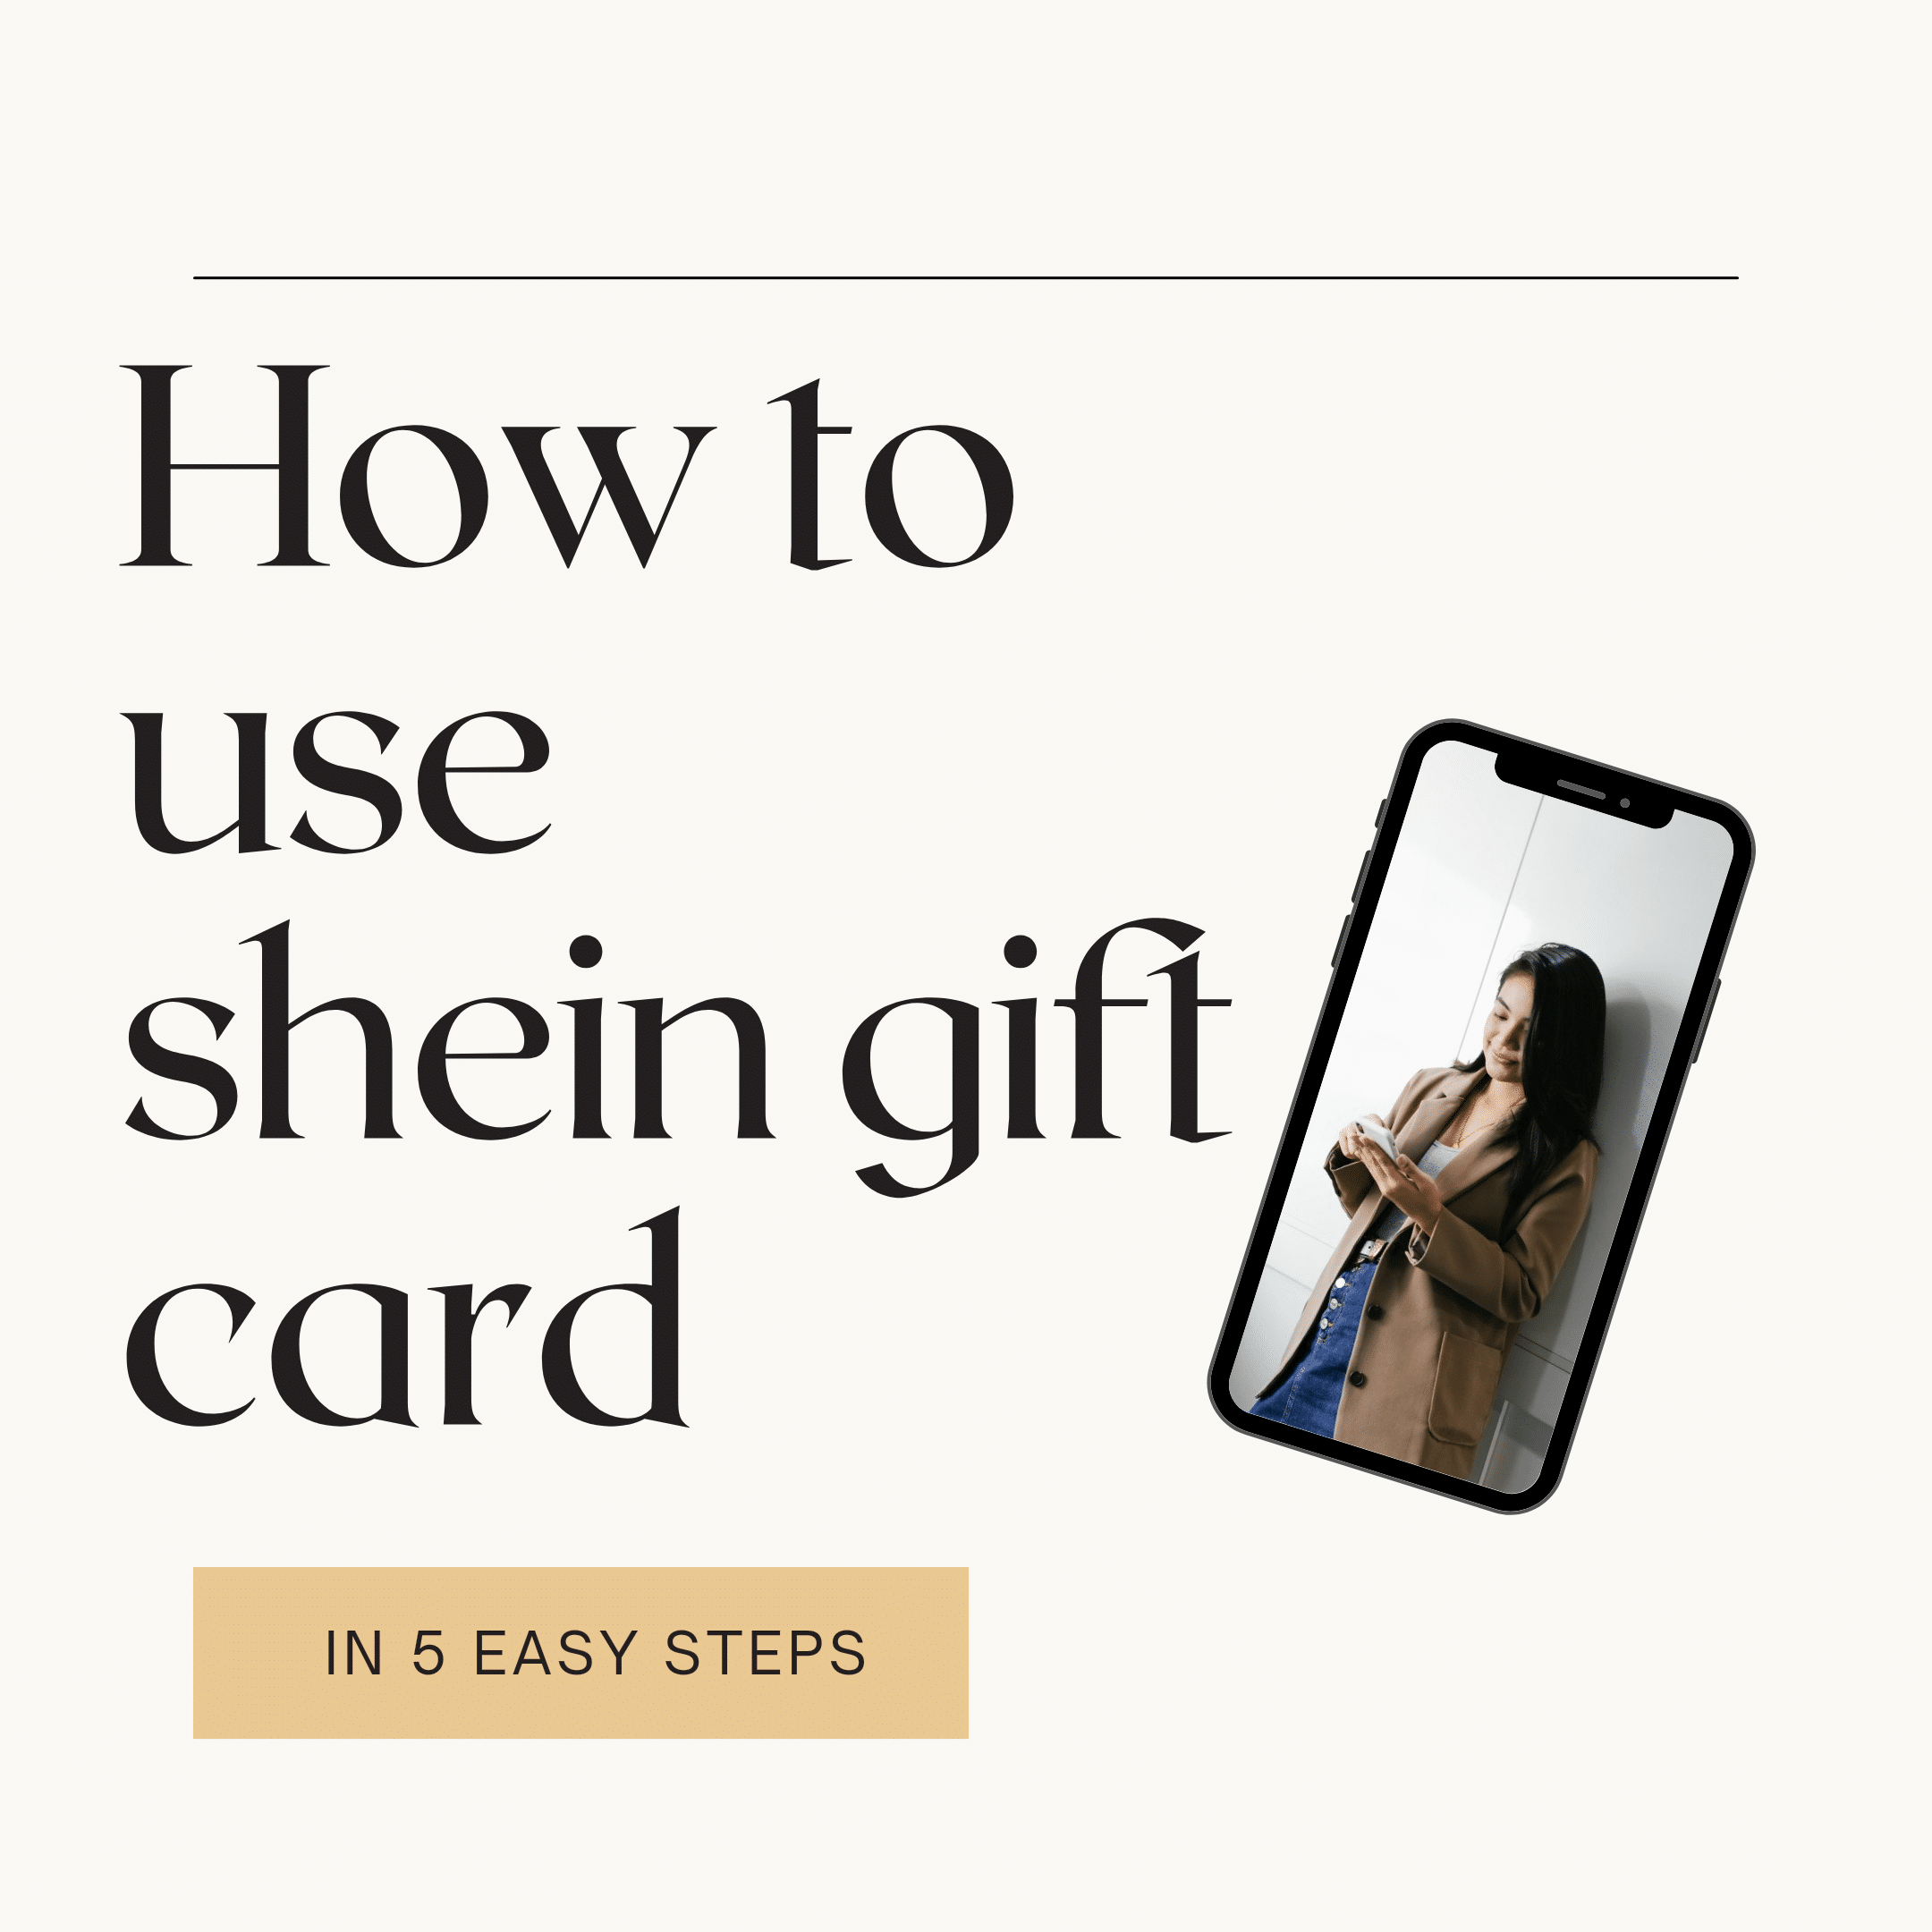 Five easy steps to use shein gift card